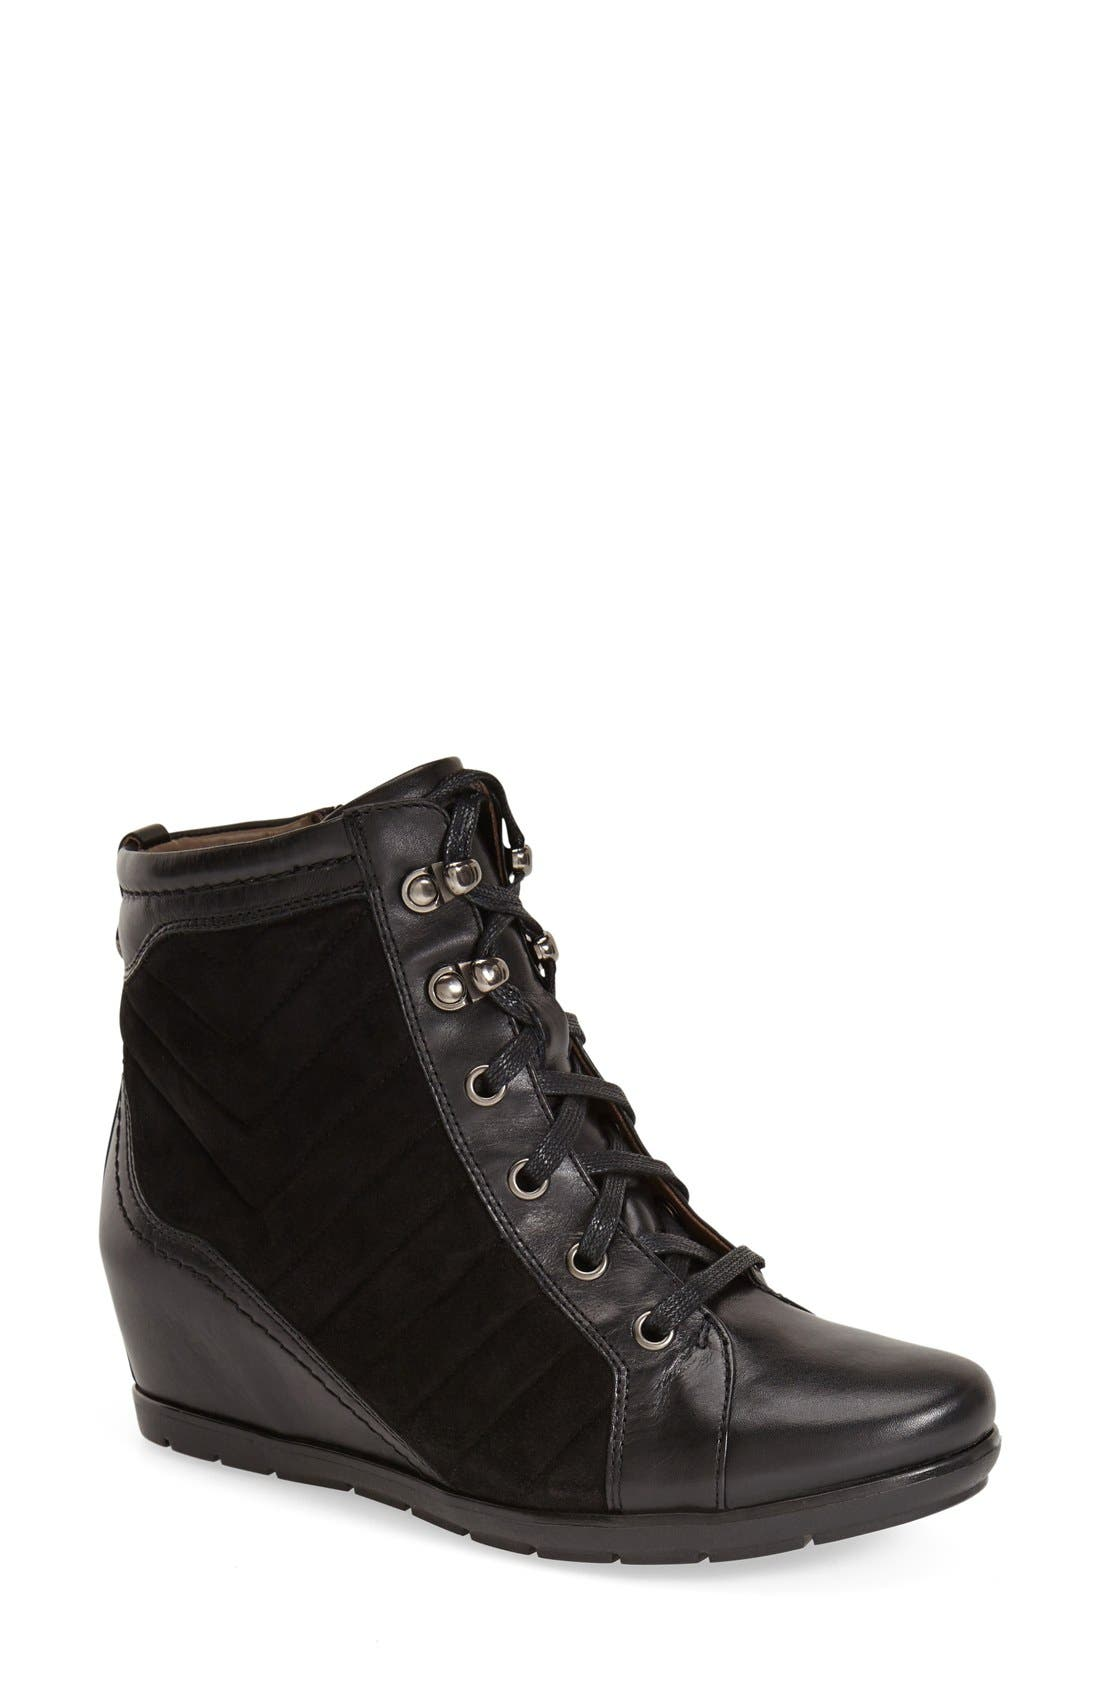 Alternate Image 1 Selected - Earthies® 'Limburg' Wedge Bootie (Women)